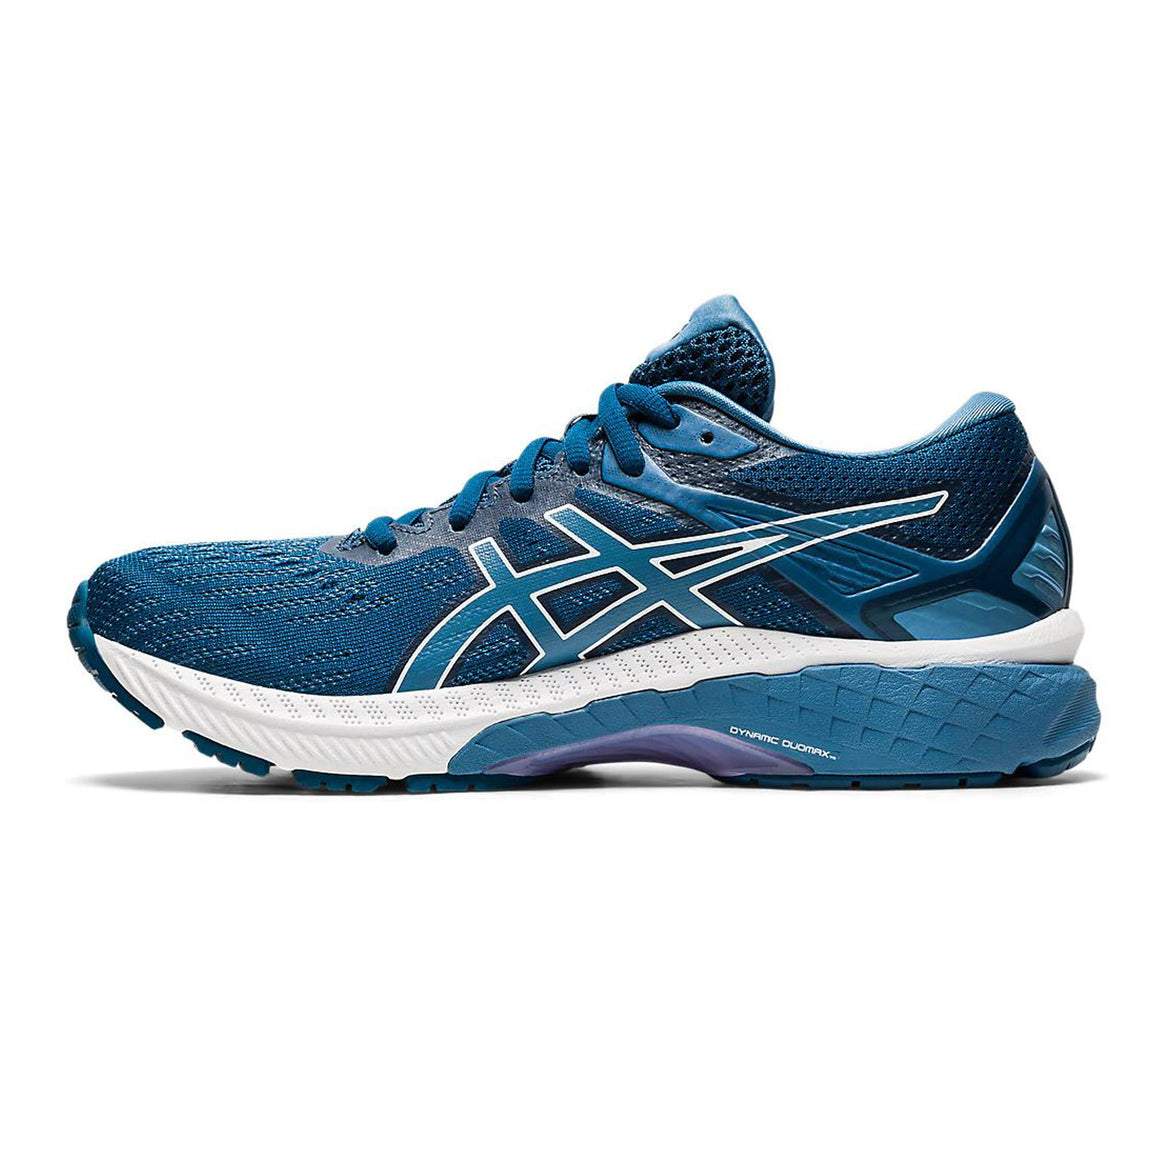 GT-2000 9 Running Shoes for Women in Mako Blue/Grey Floss